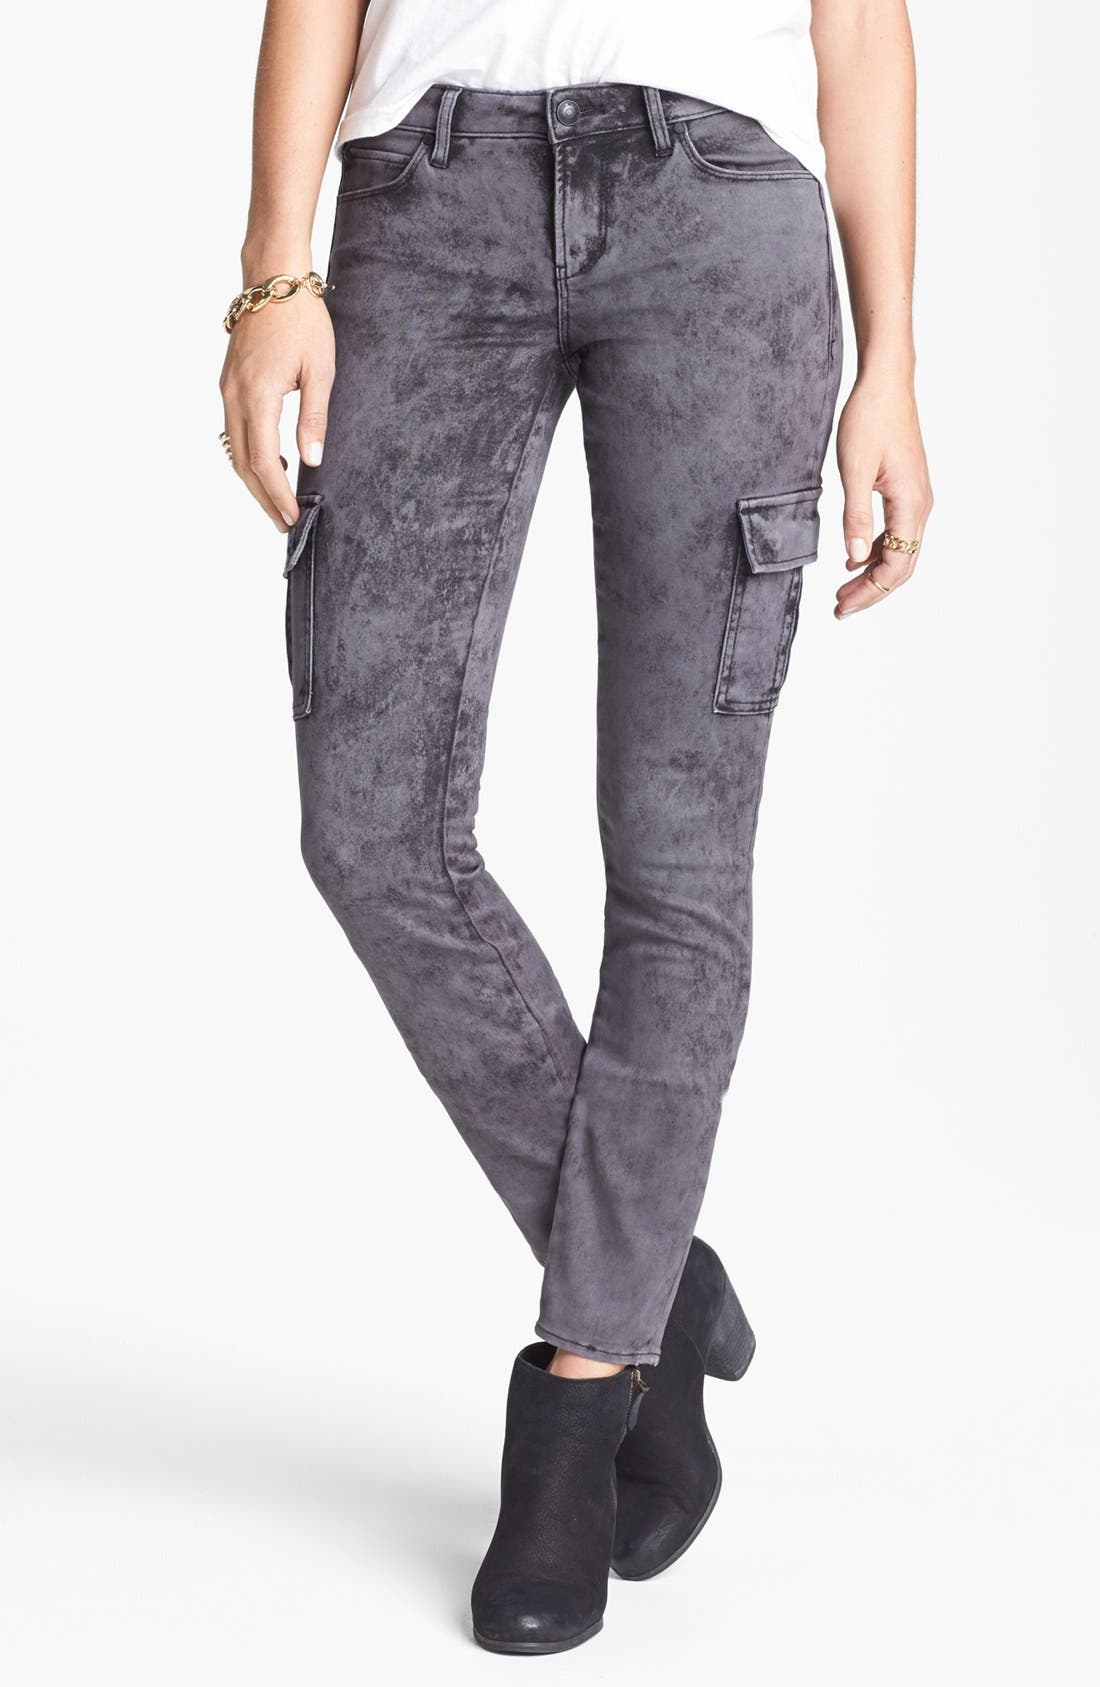 Alternate Image 1 Selected - Articles of Society 'Mya' Acid Washed Cargo Skinny Jeans (Stone) (Juniors)